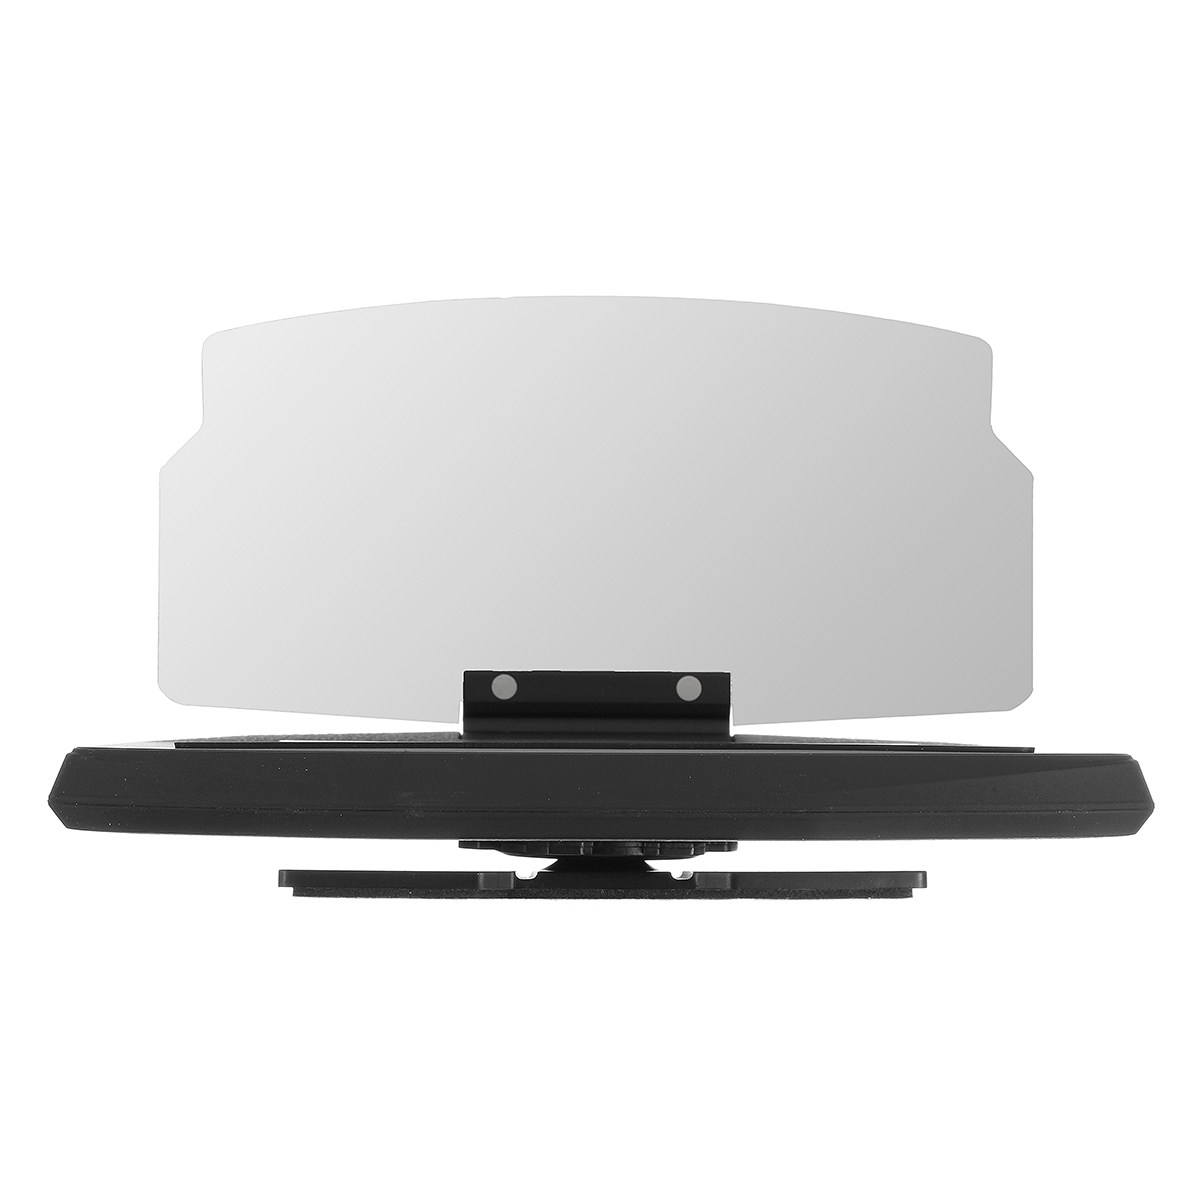 HUDWAY GLASS | UNIVERSAL VEHICLE ACCESSORY - TURNS YOUR PHONE TO HEAD UP DISPLAY 4